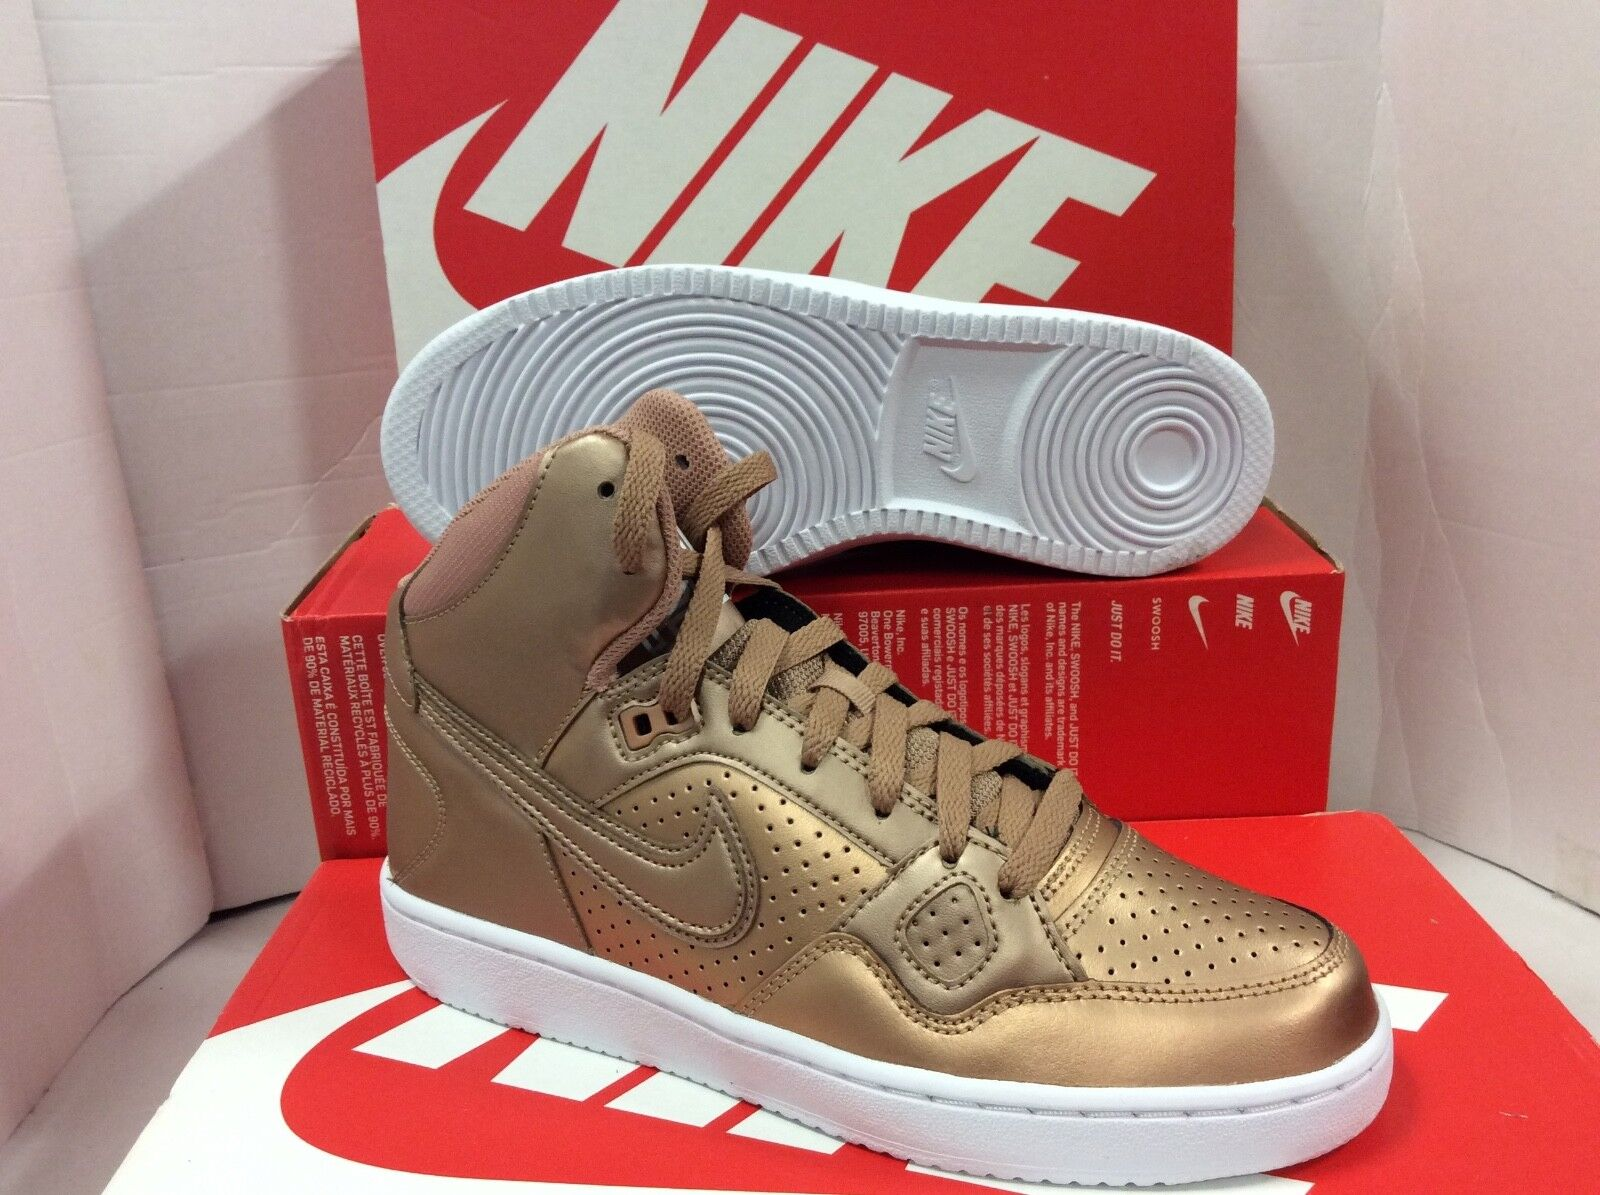 Nike Son of Force Womens Mid Trainers, Size UK 5.5 / EU 39